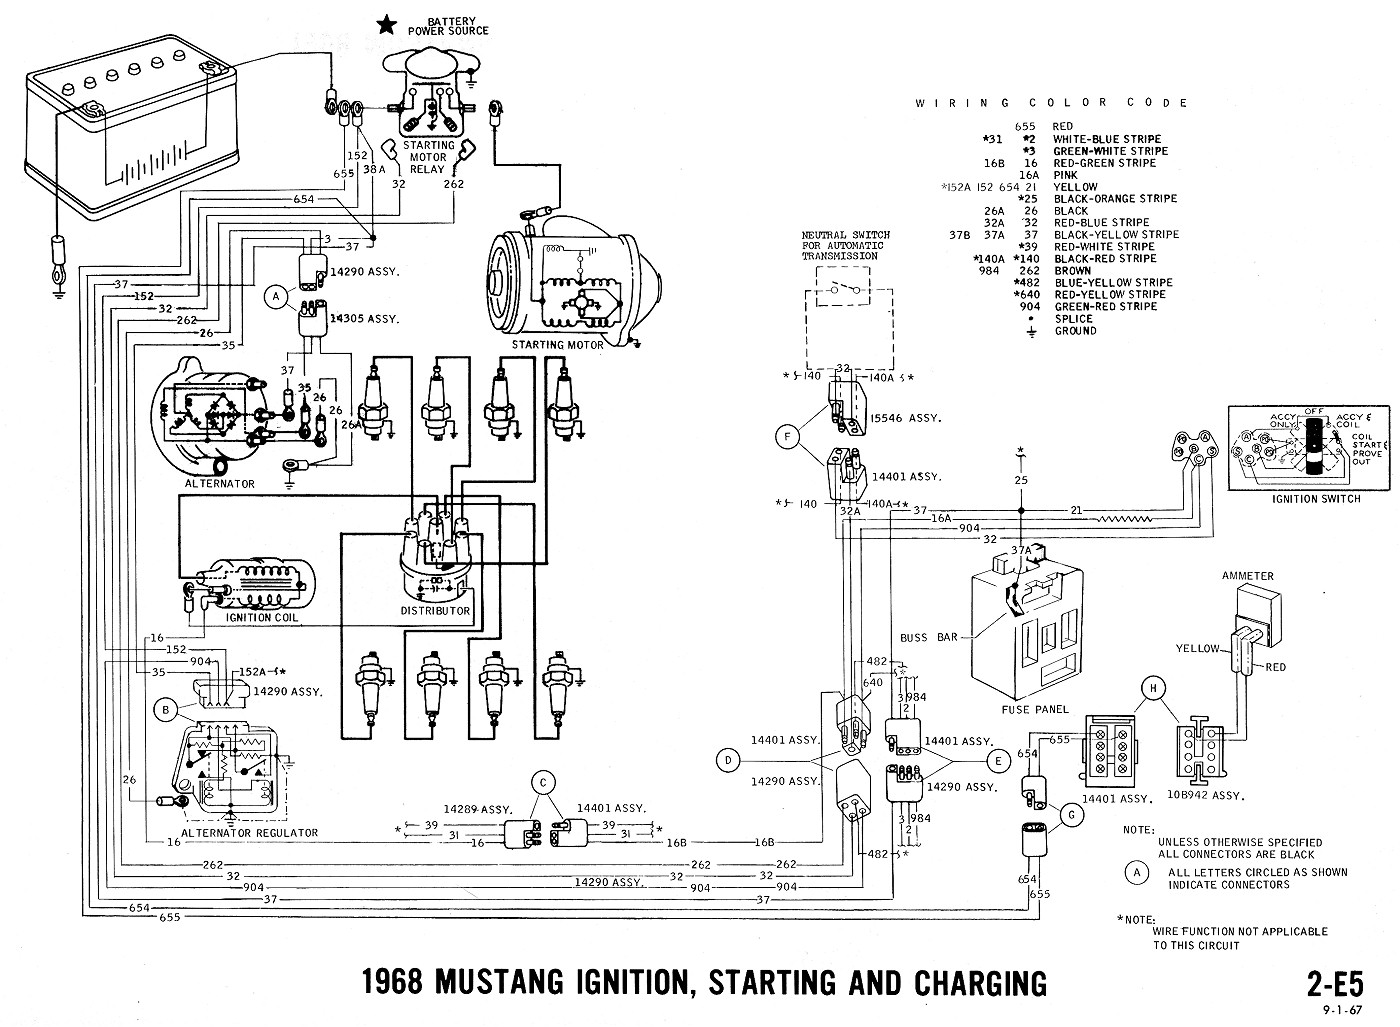 hight resolution of alternator wiring diagram for 1965 mustang auto electrical wiring 1975 f100 wiring diagrams 1968 mustang wiring